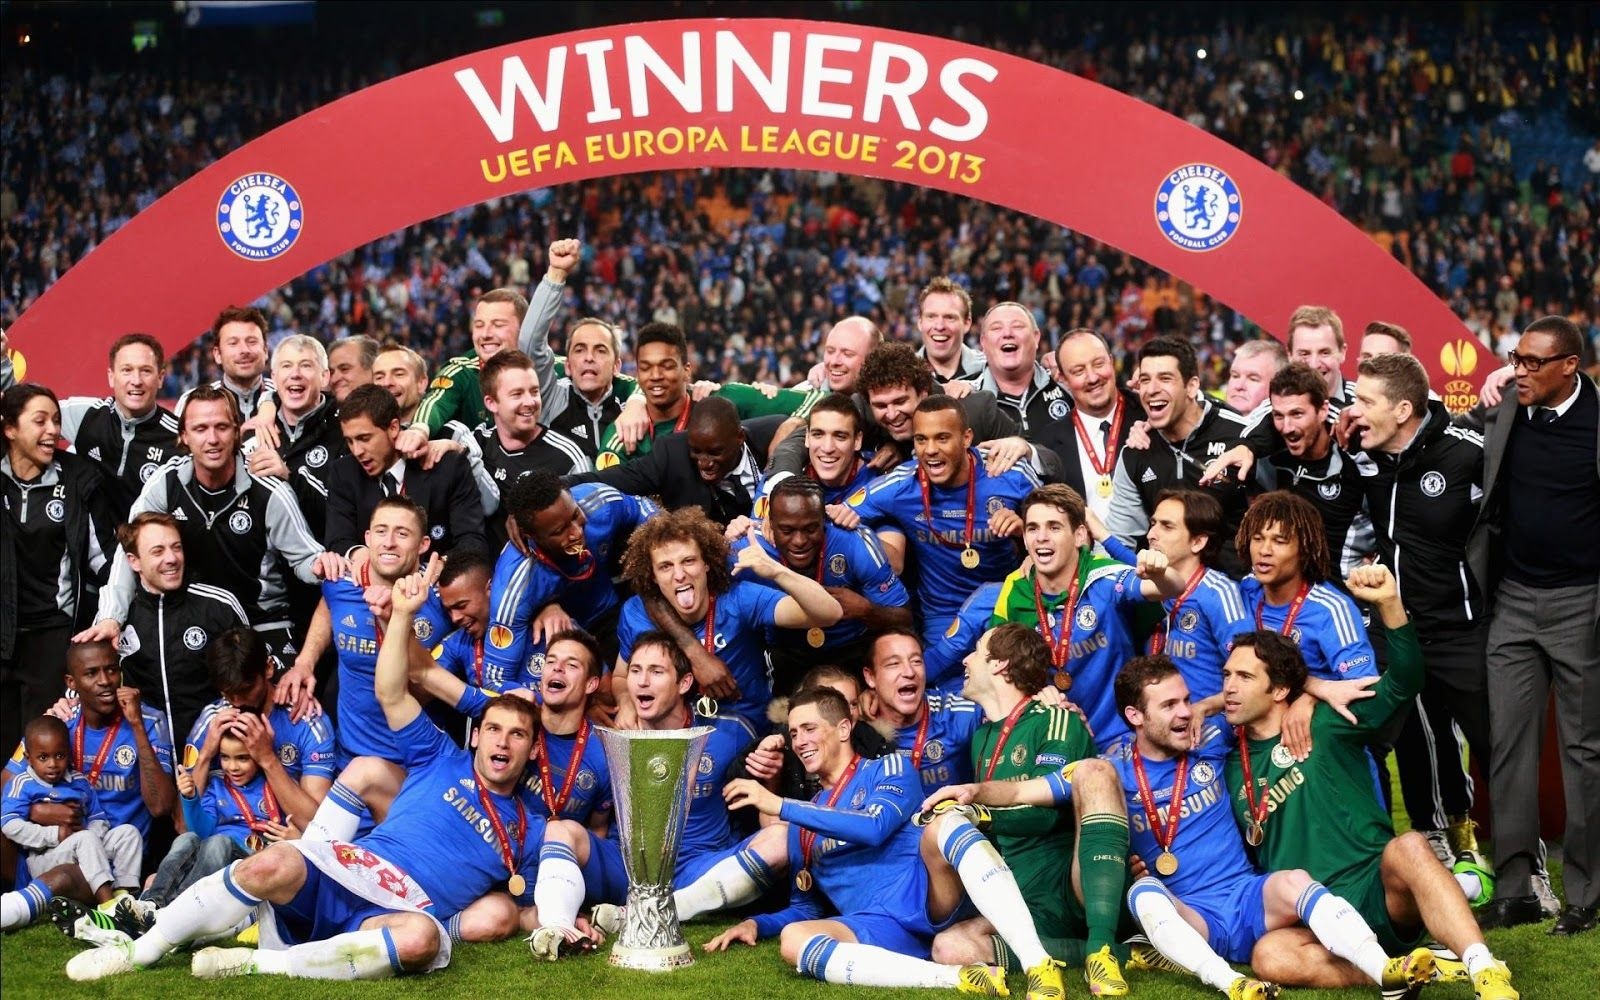 Watch More Like Chelsea Fc Champions League Wallpaper Images